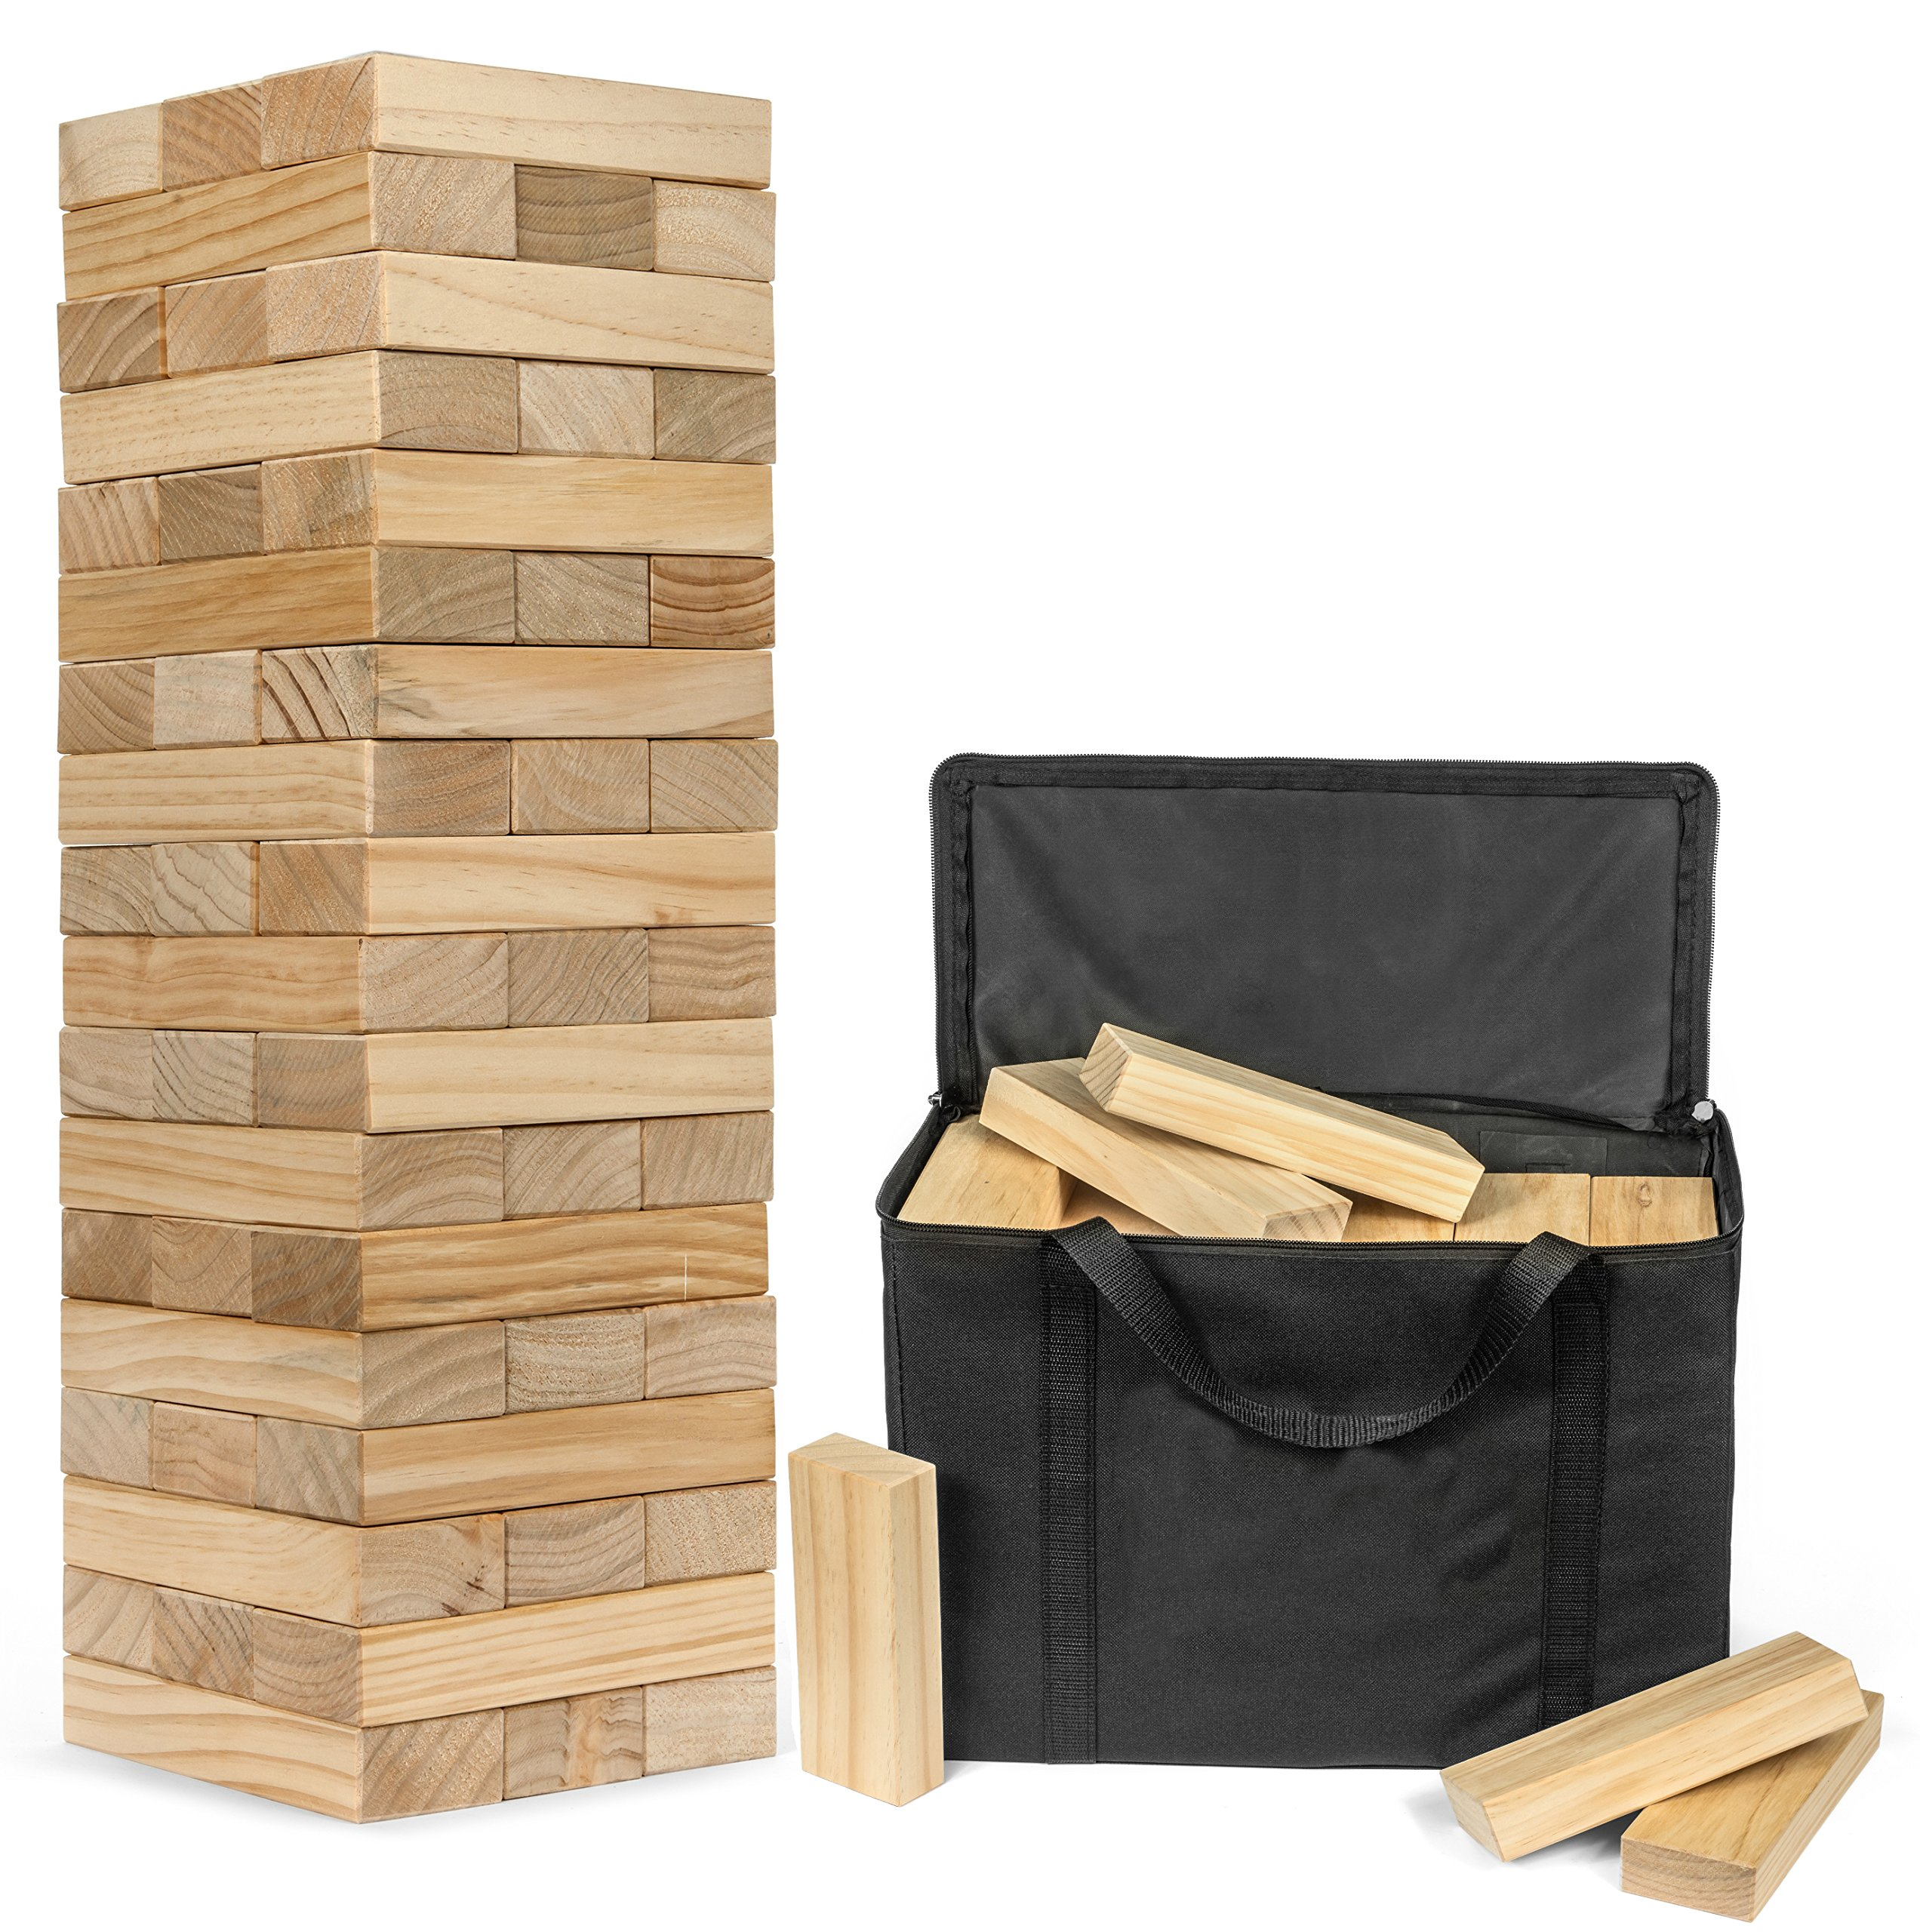 Giant Topple Tower - Plays Over 5 Feet Tall - With Heavy Duty Carrying Case